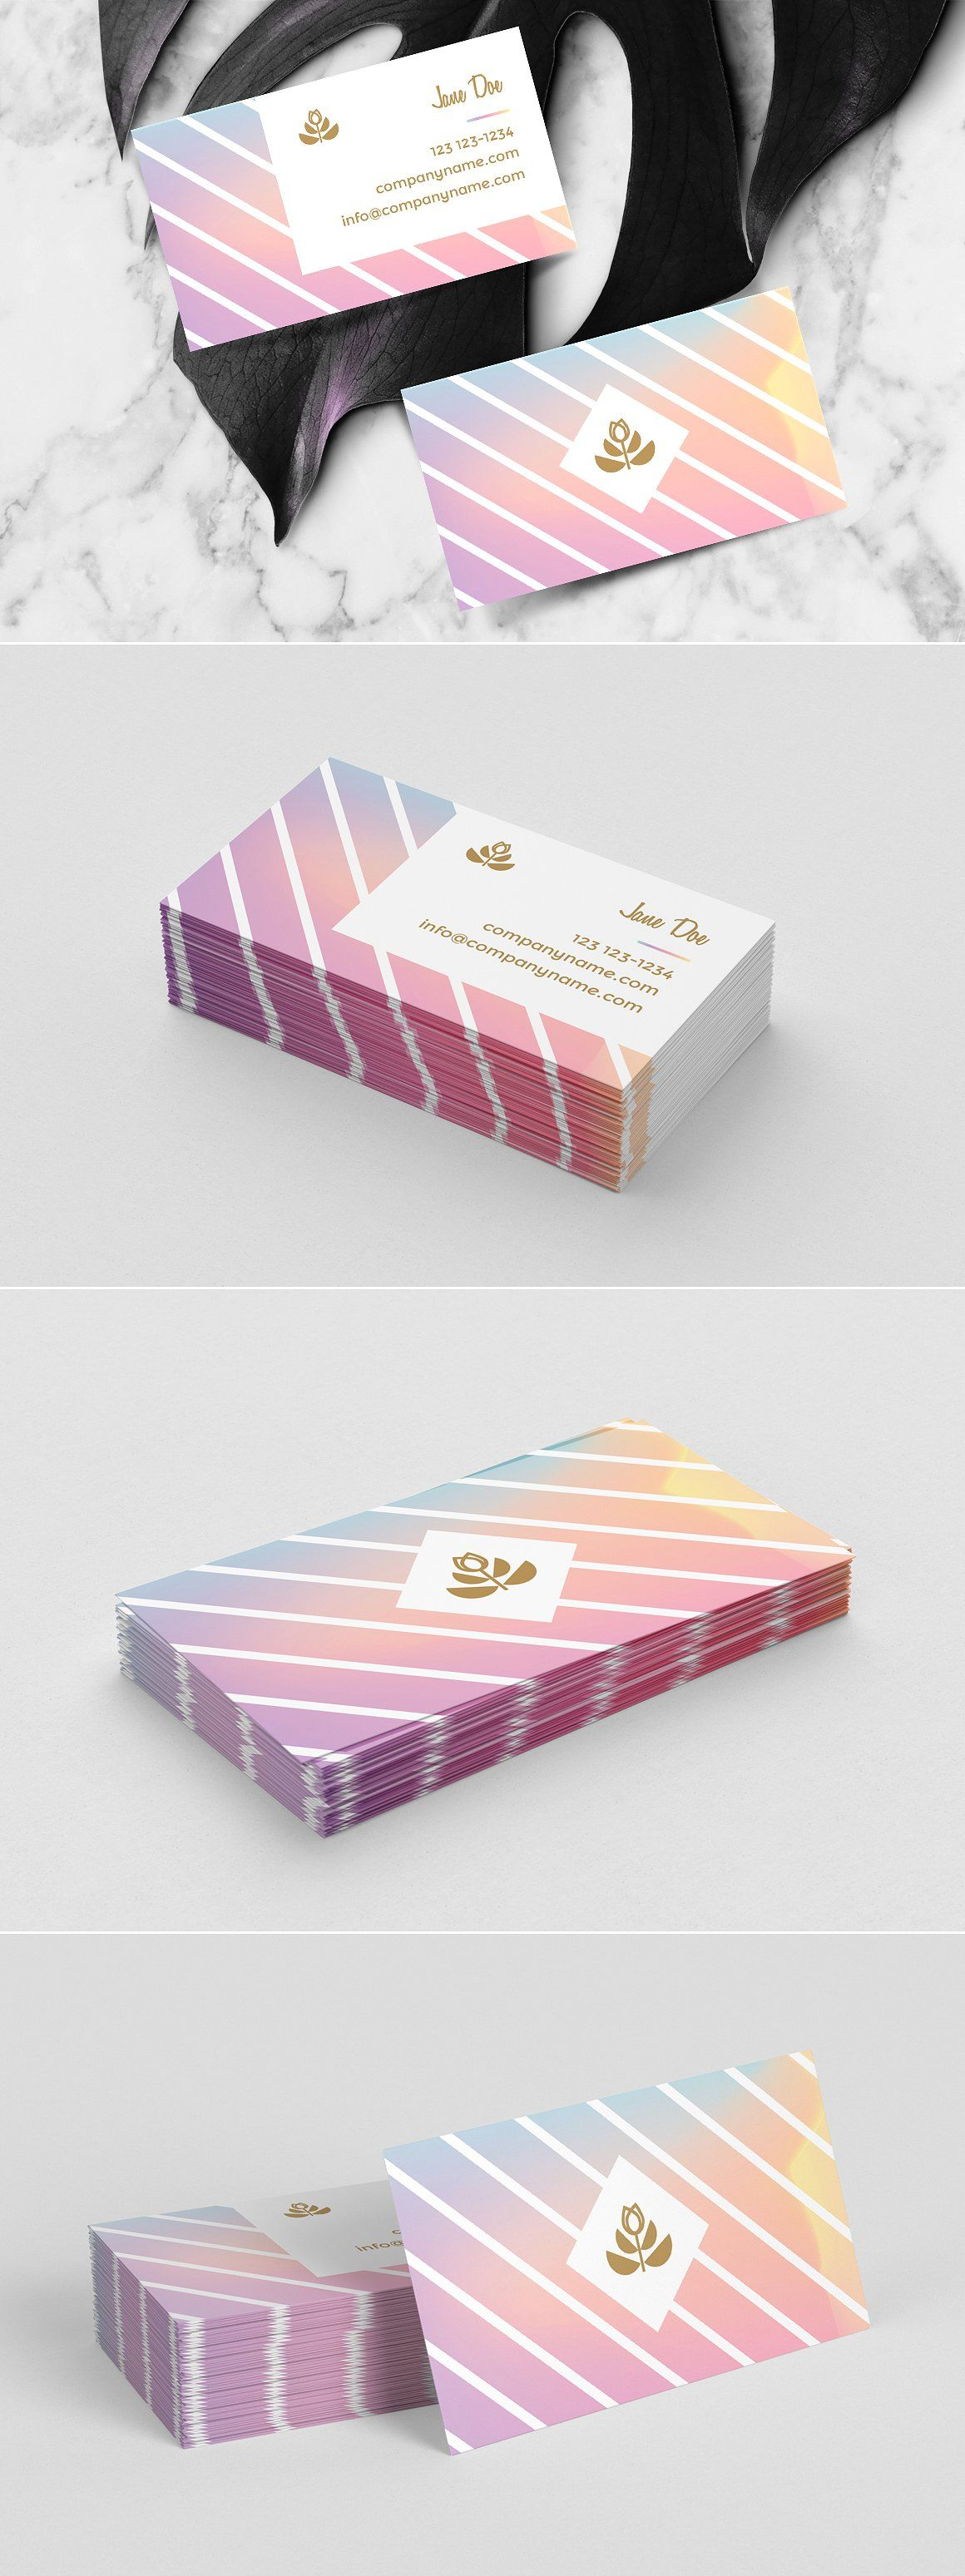 Feminine business card template | Card templates, Business cards and ...